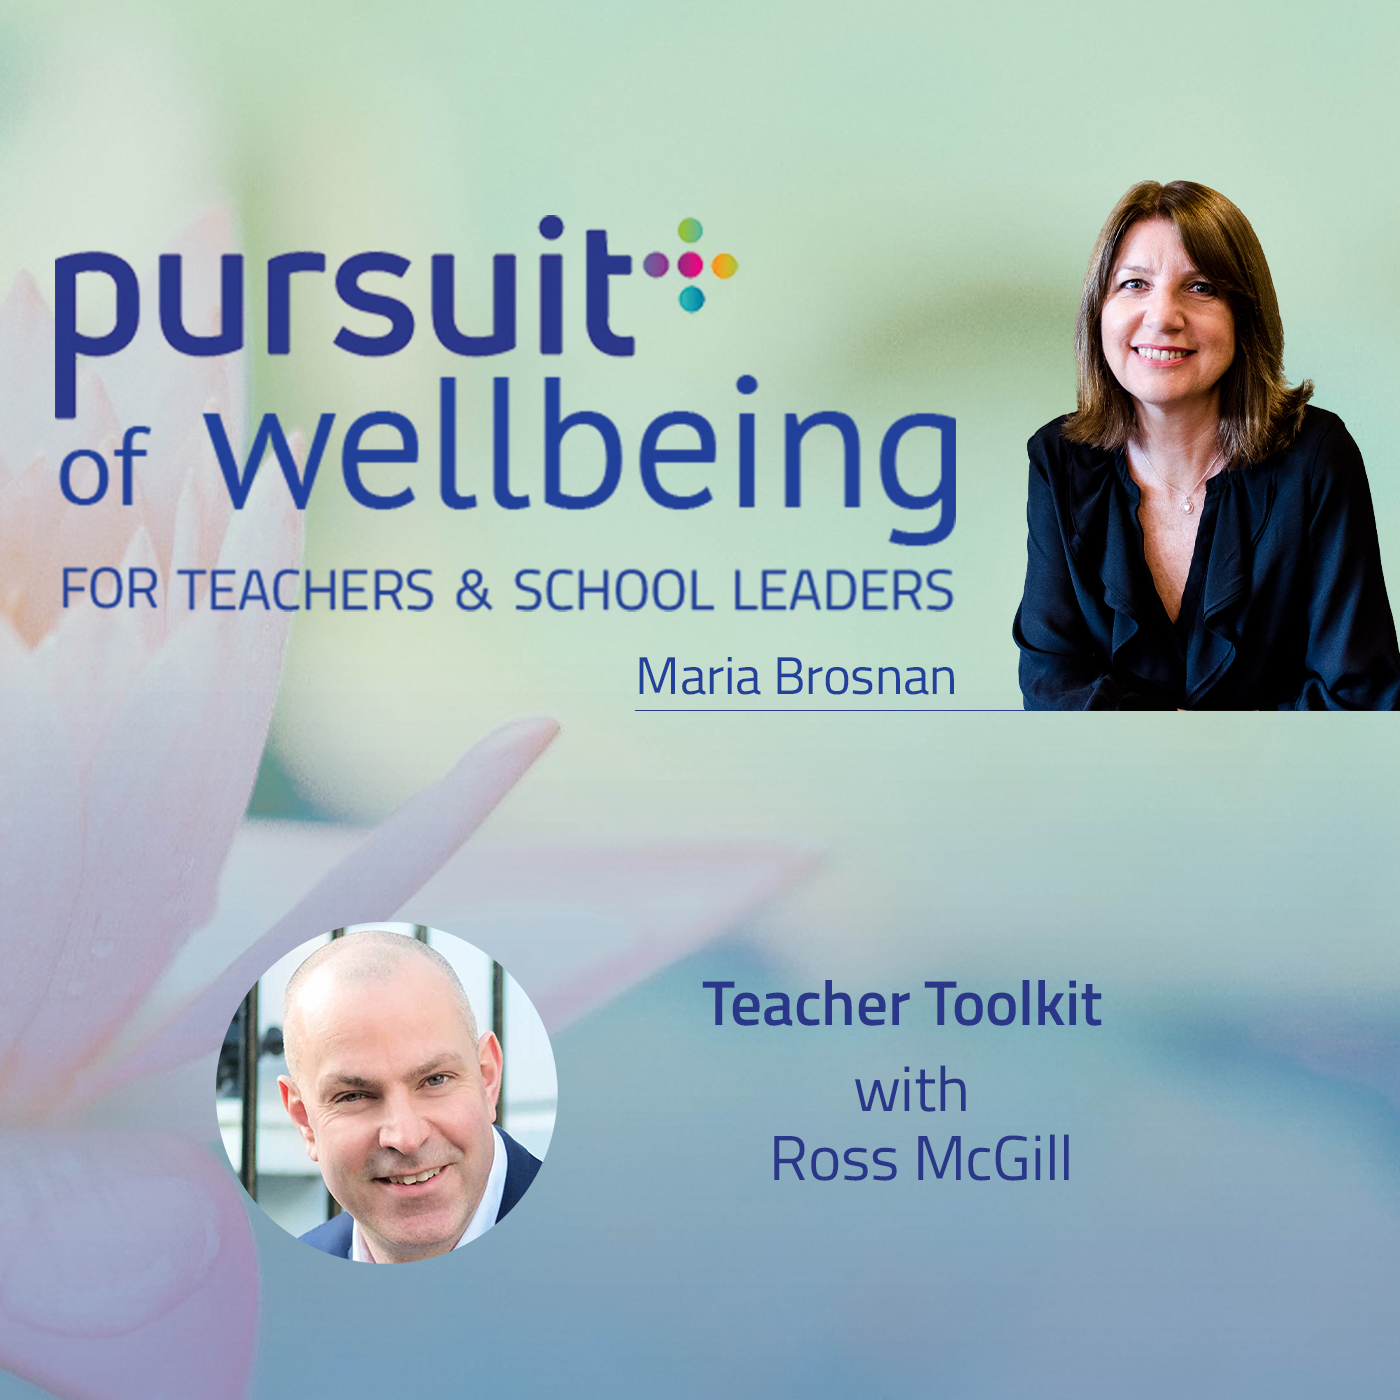 The Teacher Toolkit with Ross McGill